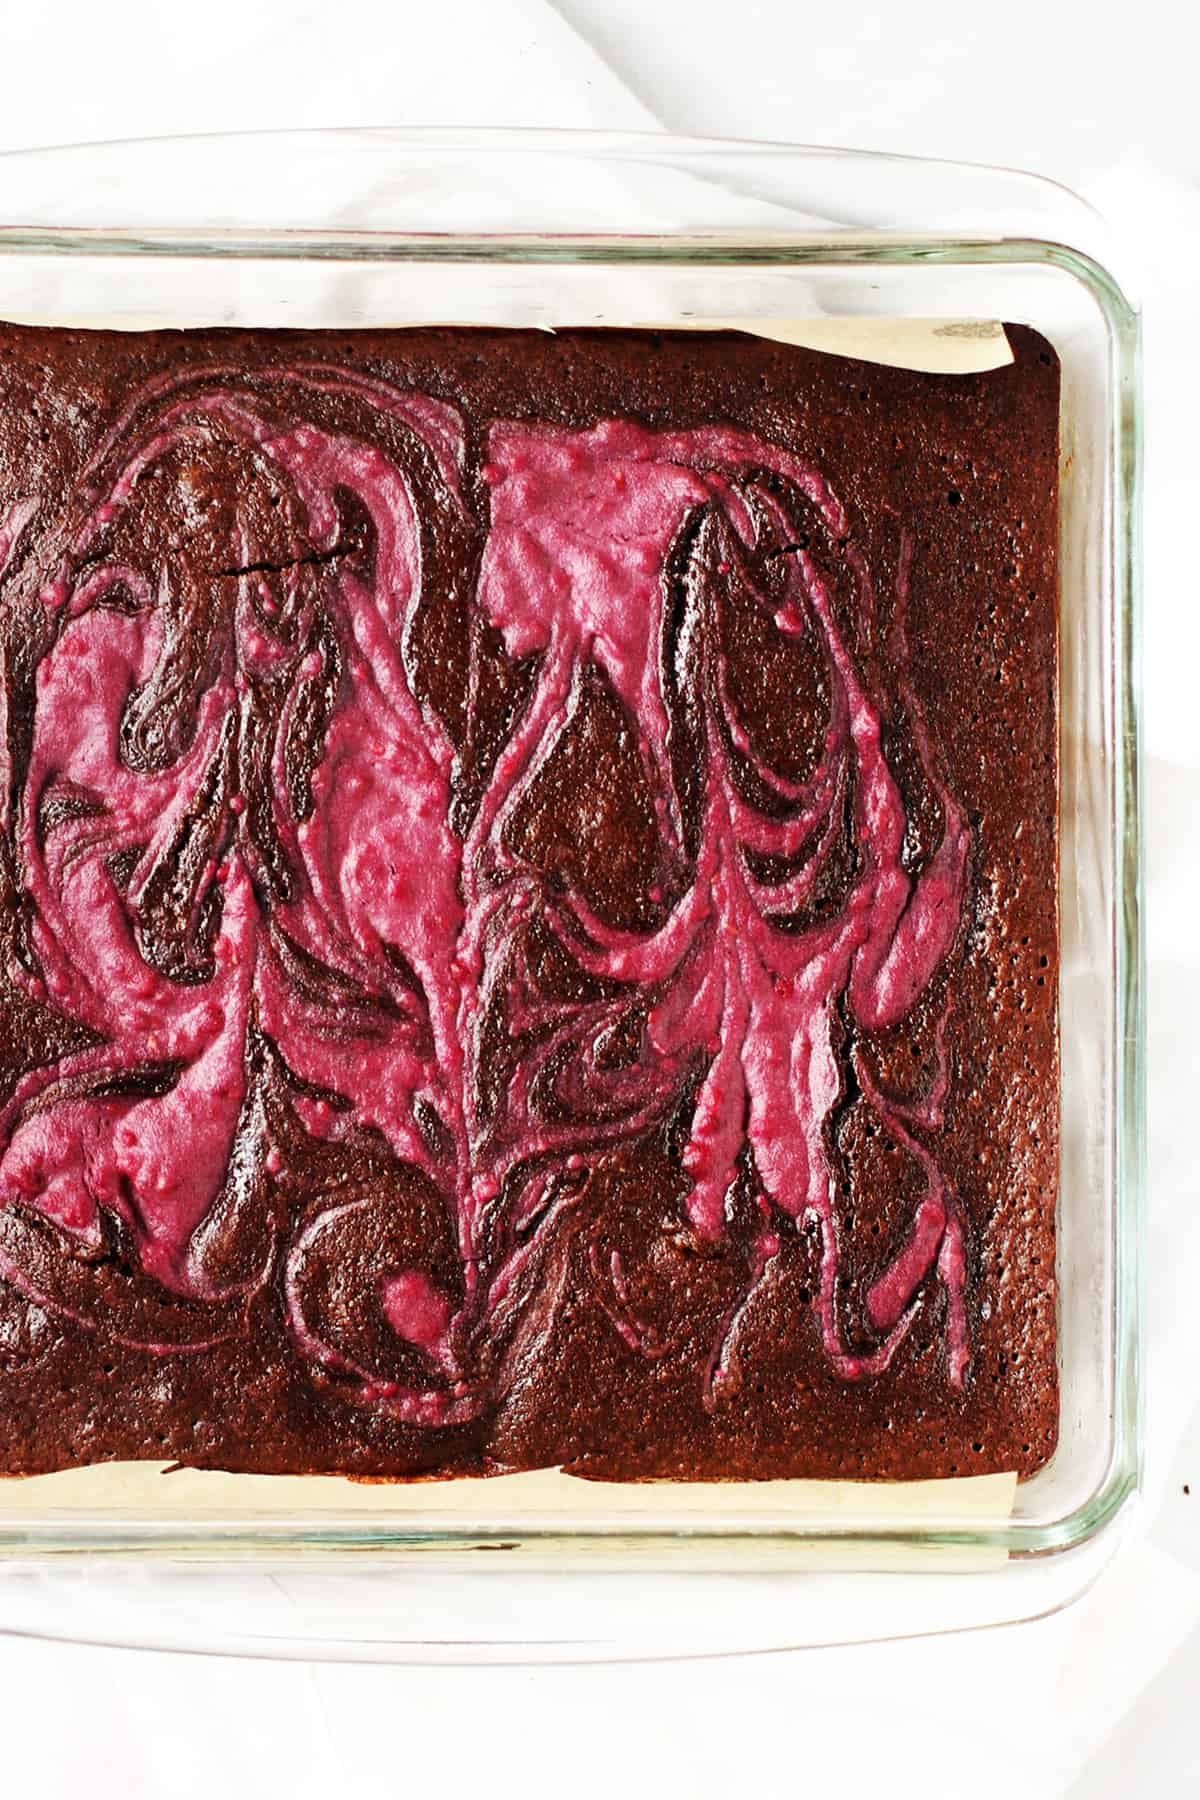 Raspberry Swirl brownies in a baking dish.